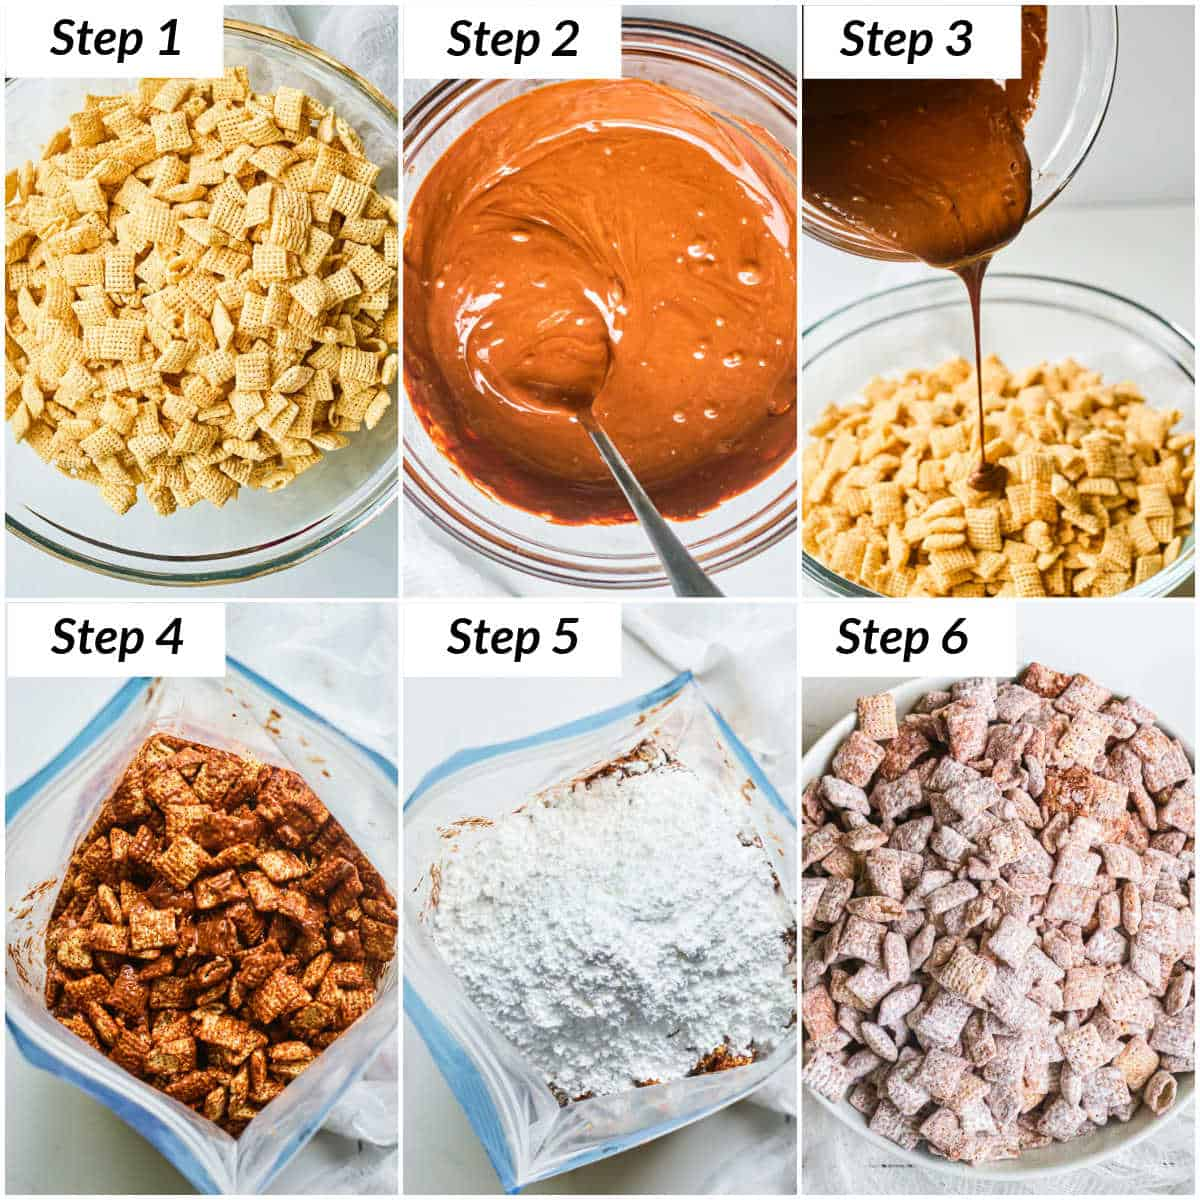 image collage showing the steps for making puppy chow